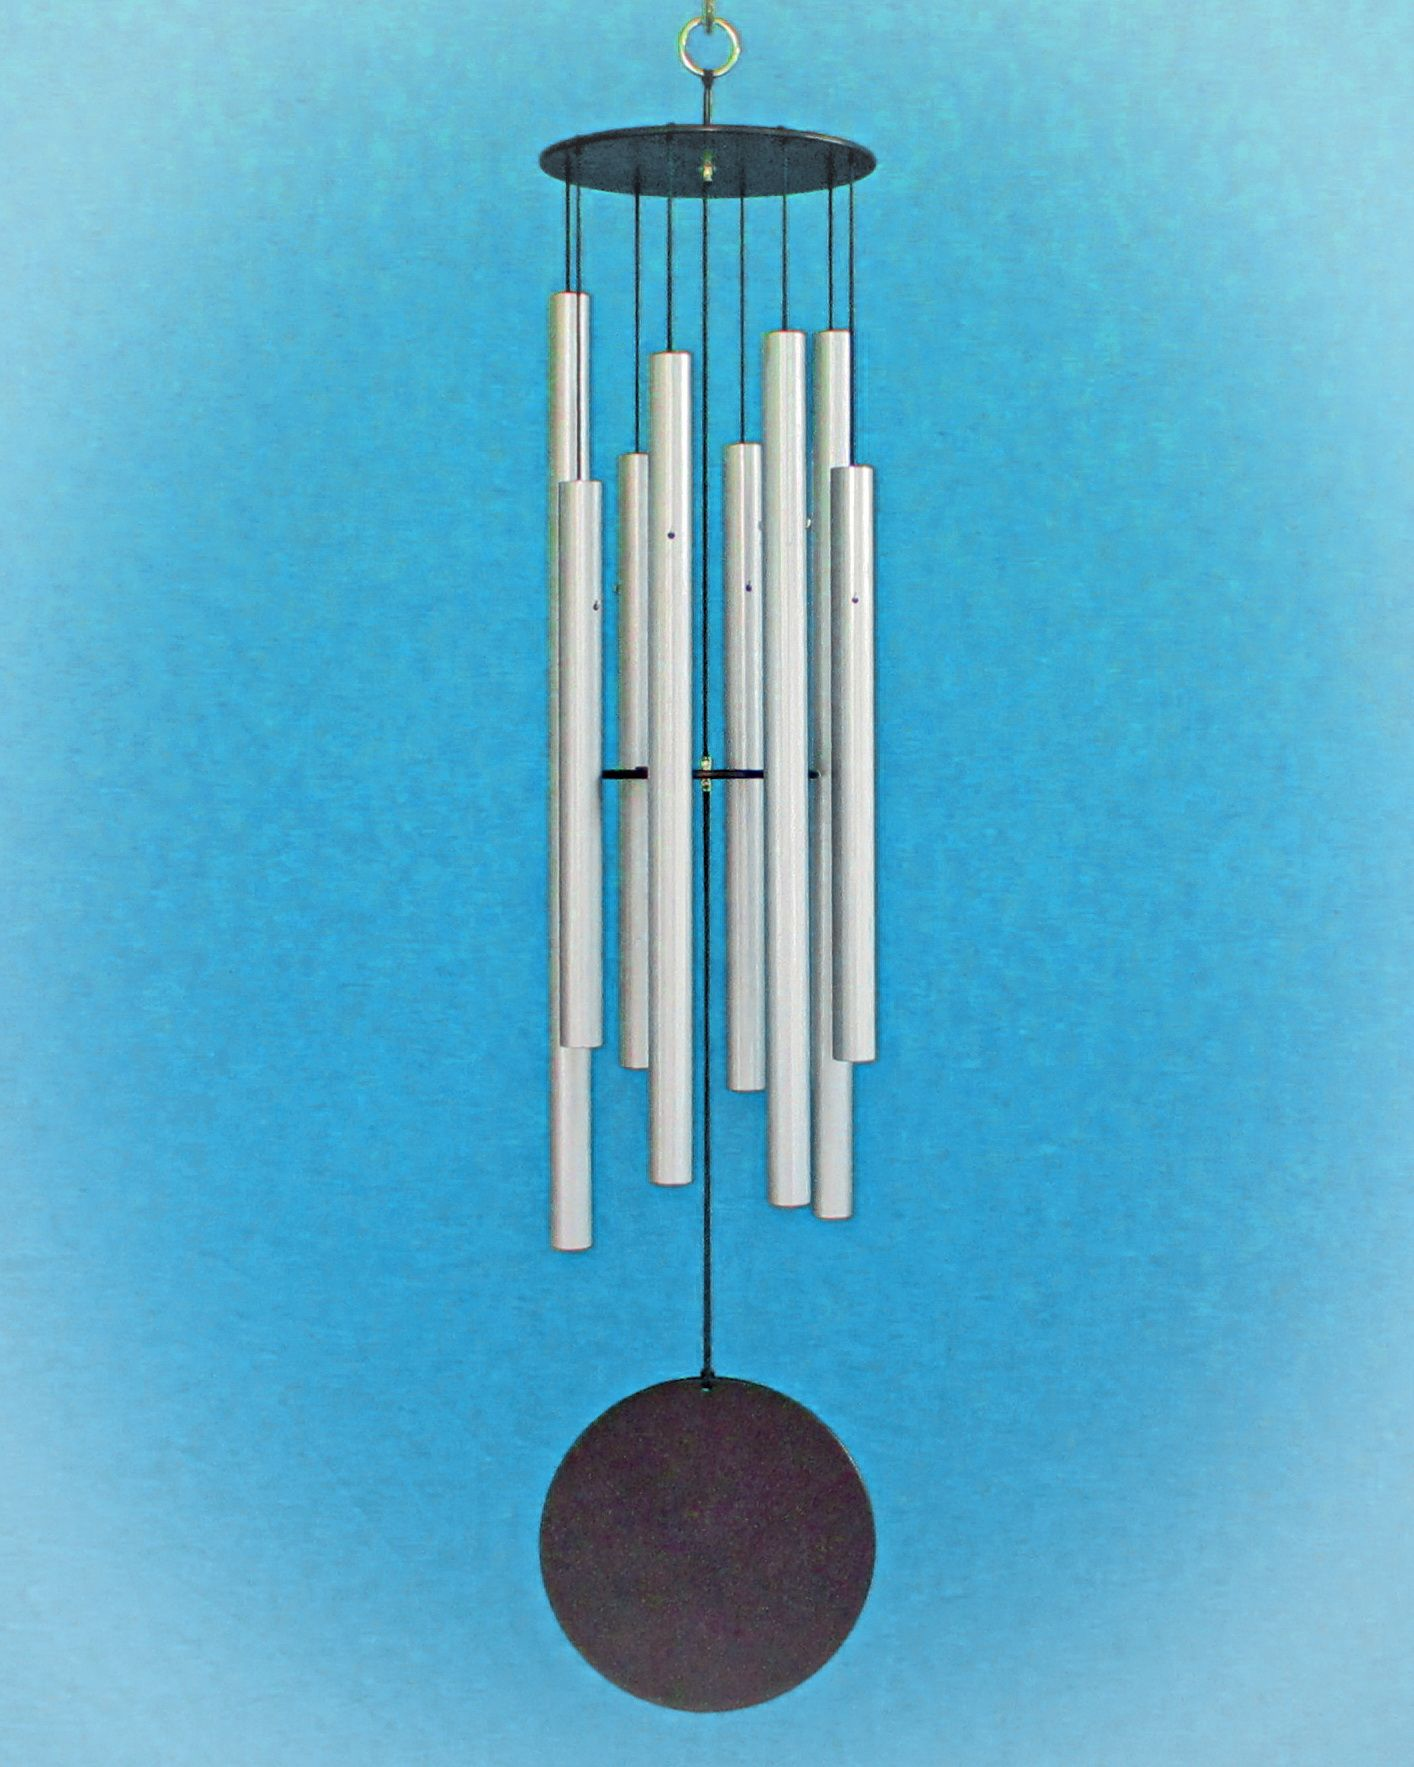 Lingering Lullaby Wind Chime Features The First Four Musical